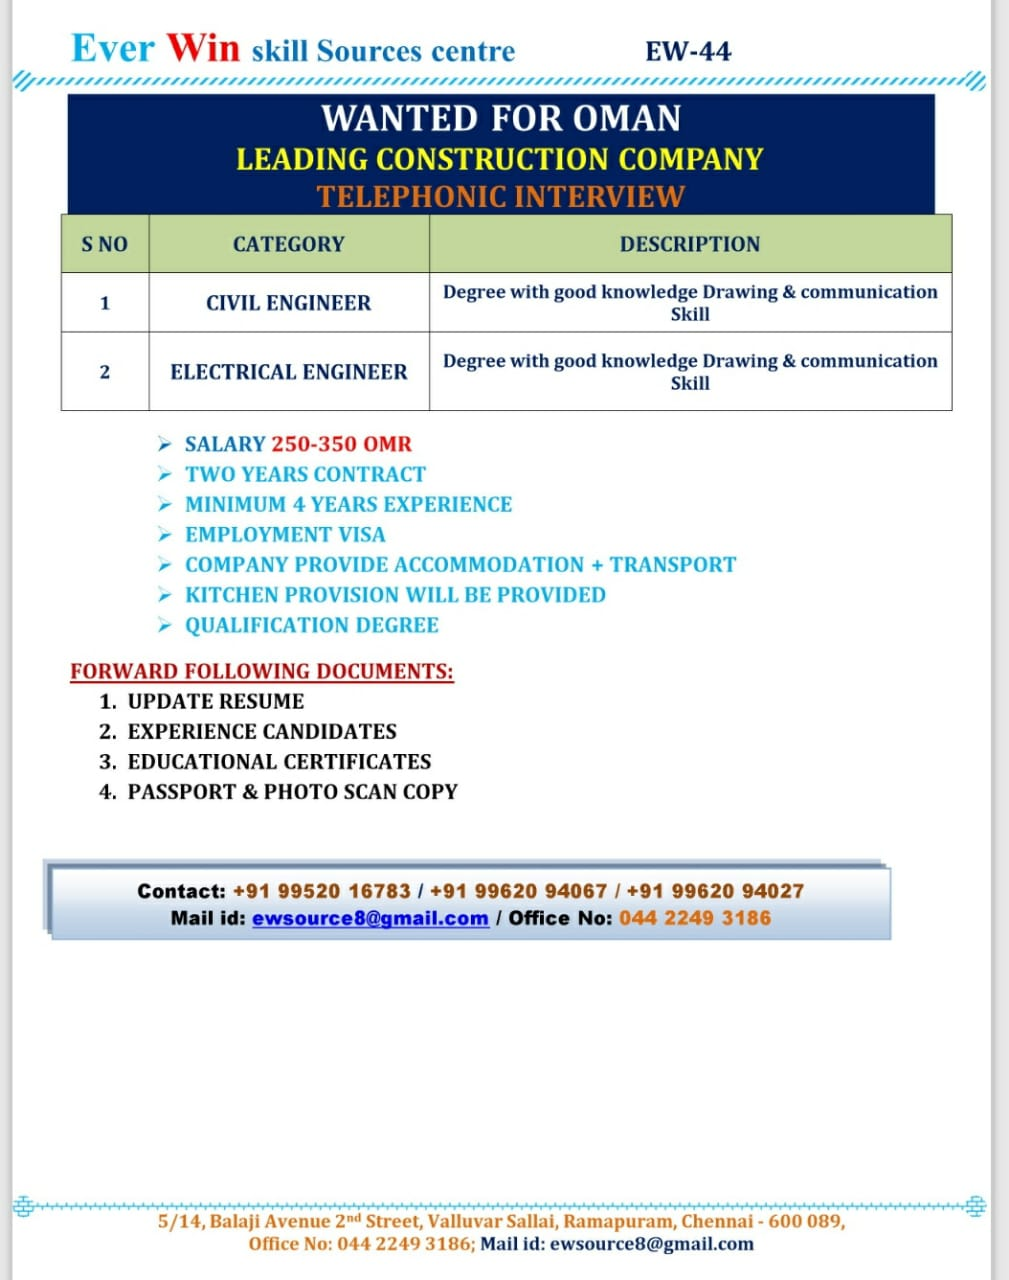 REQUIRED AT OMAN CONSTRUCTION COMPANY, TELEPHONIC INTERVIEW